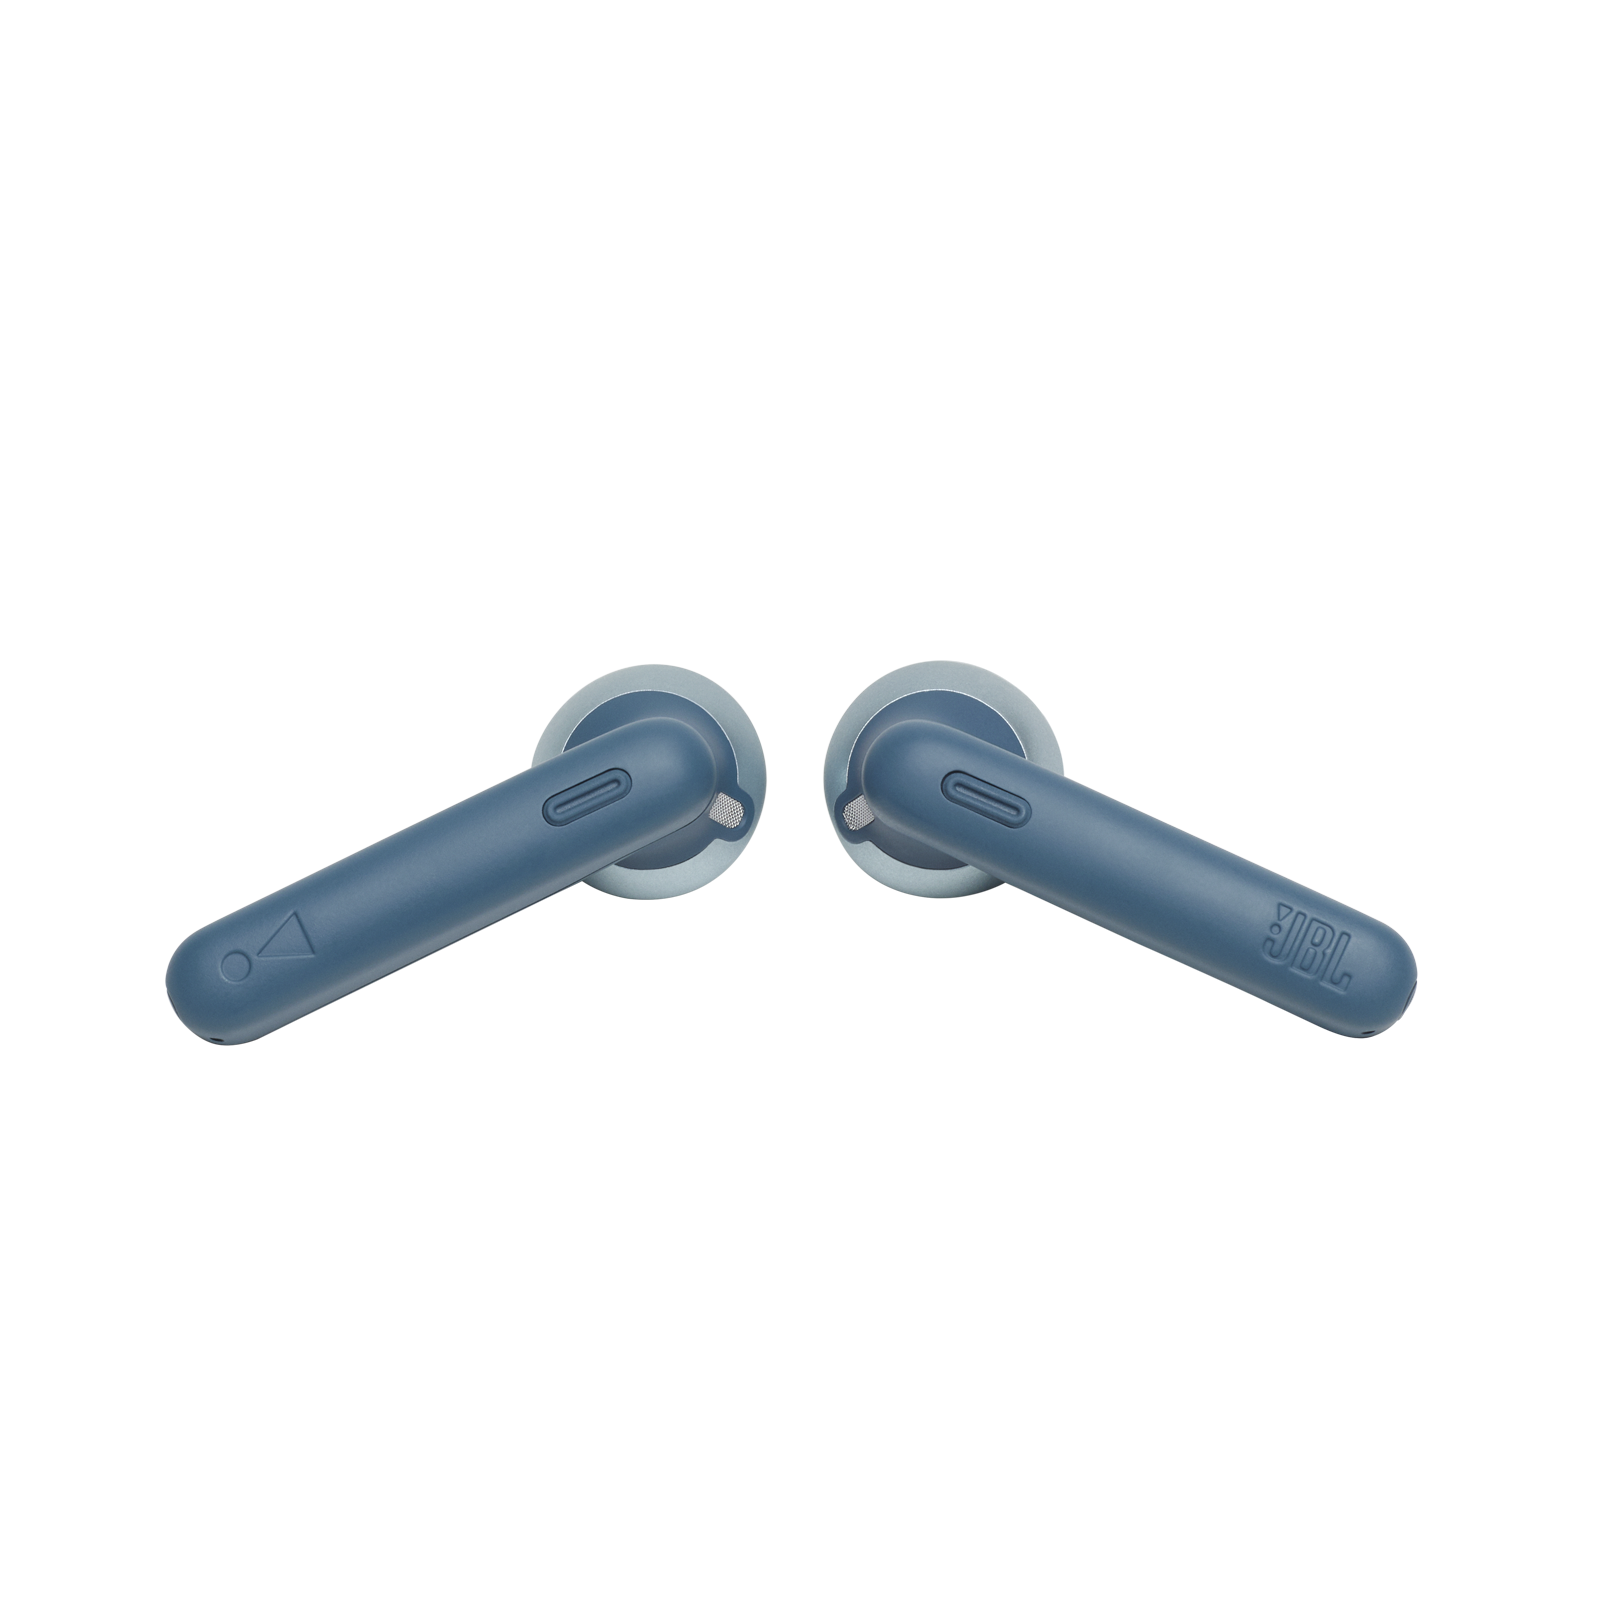 JBL Tune 225TWS - Blue - True wireless earbud headphones - Detailshot 2